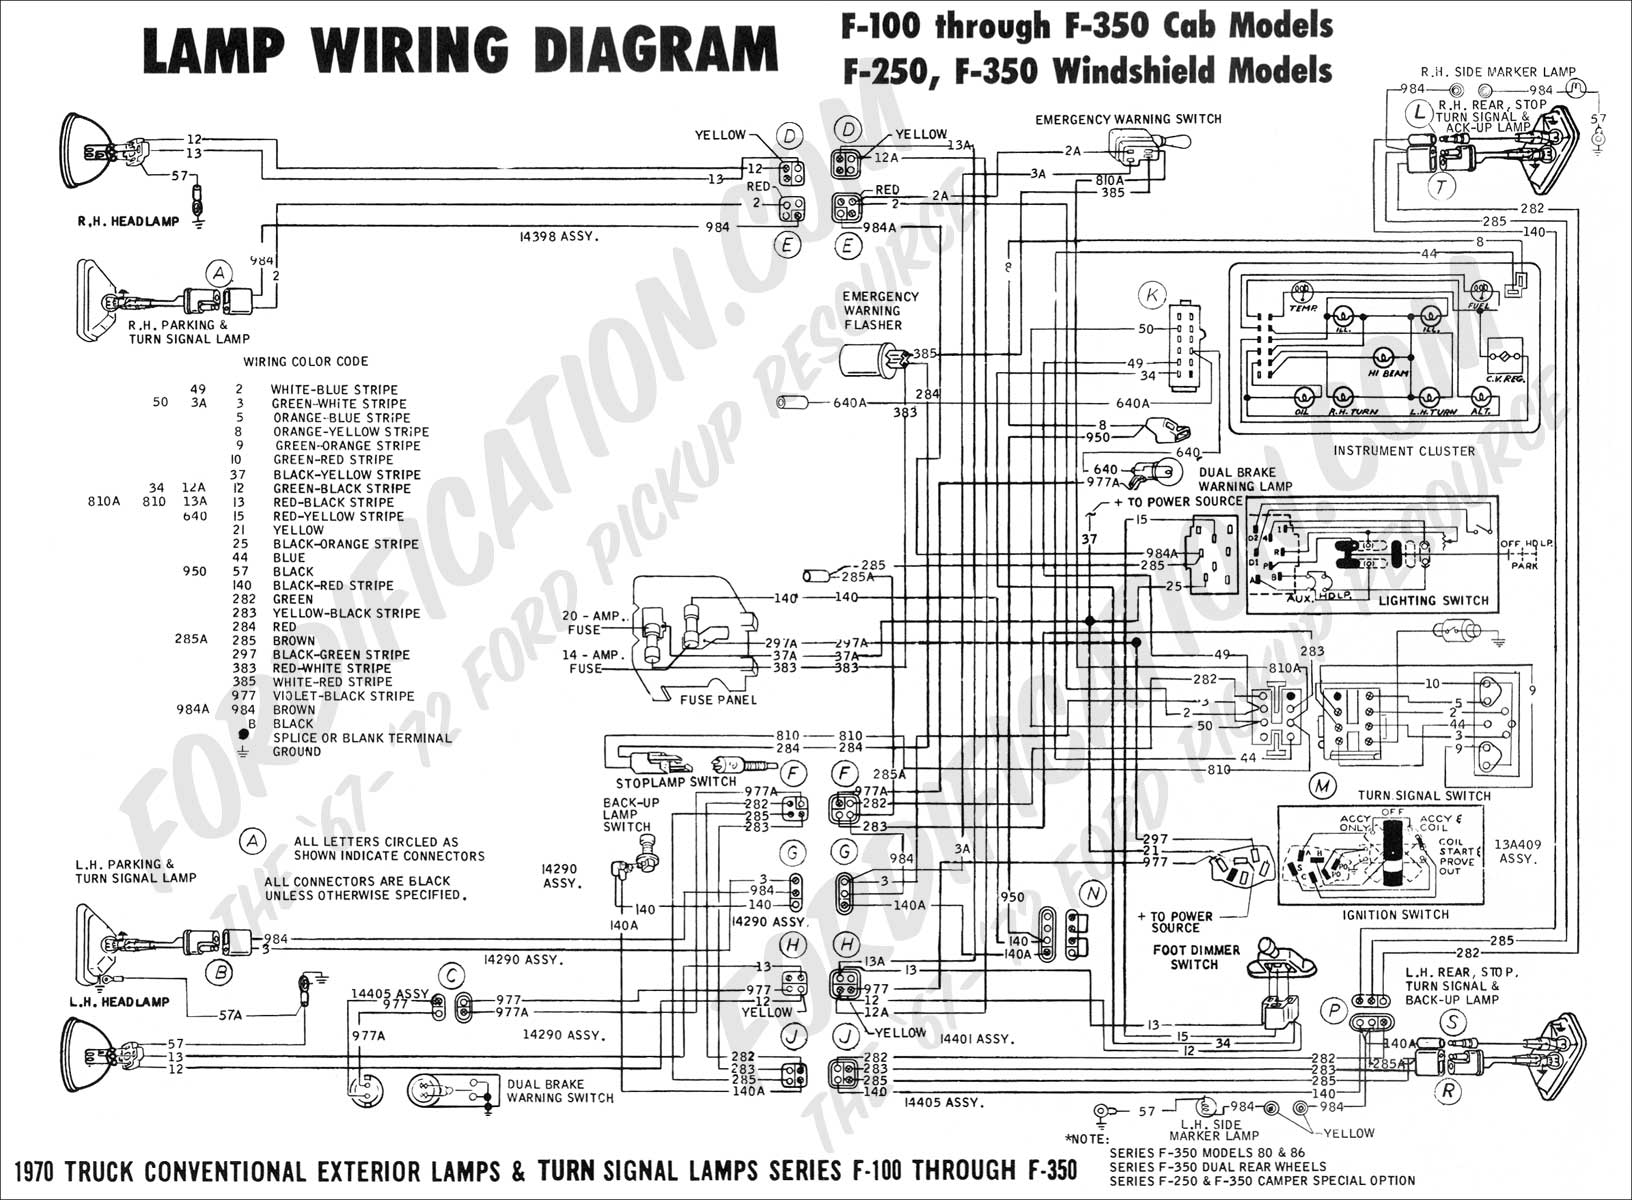 wiring diagram_70ext lights01 ford truck technical drawings and schematics section h wiring 97 f250 tail light wiring diagram at mifinder.co